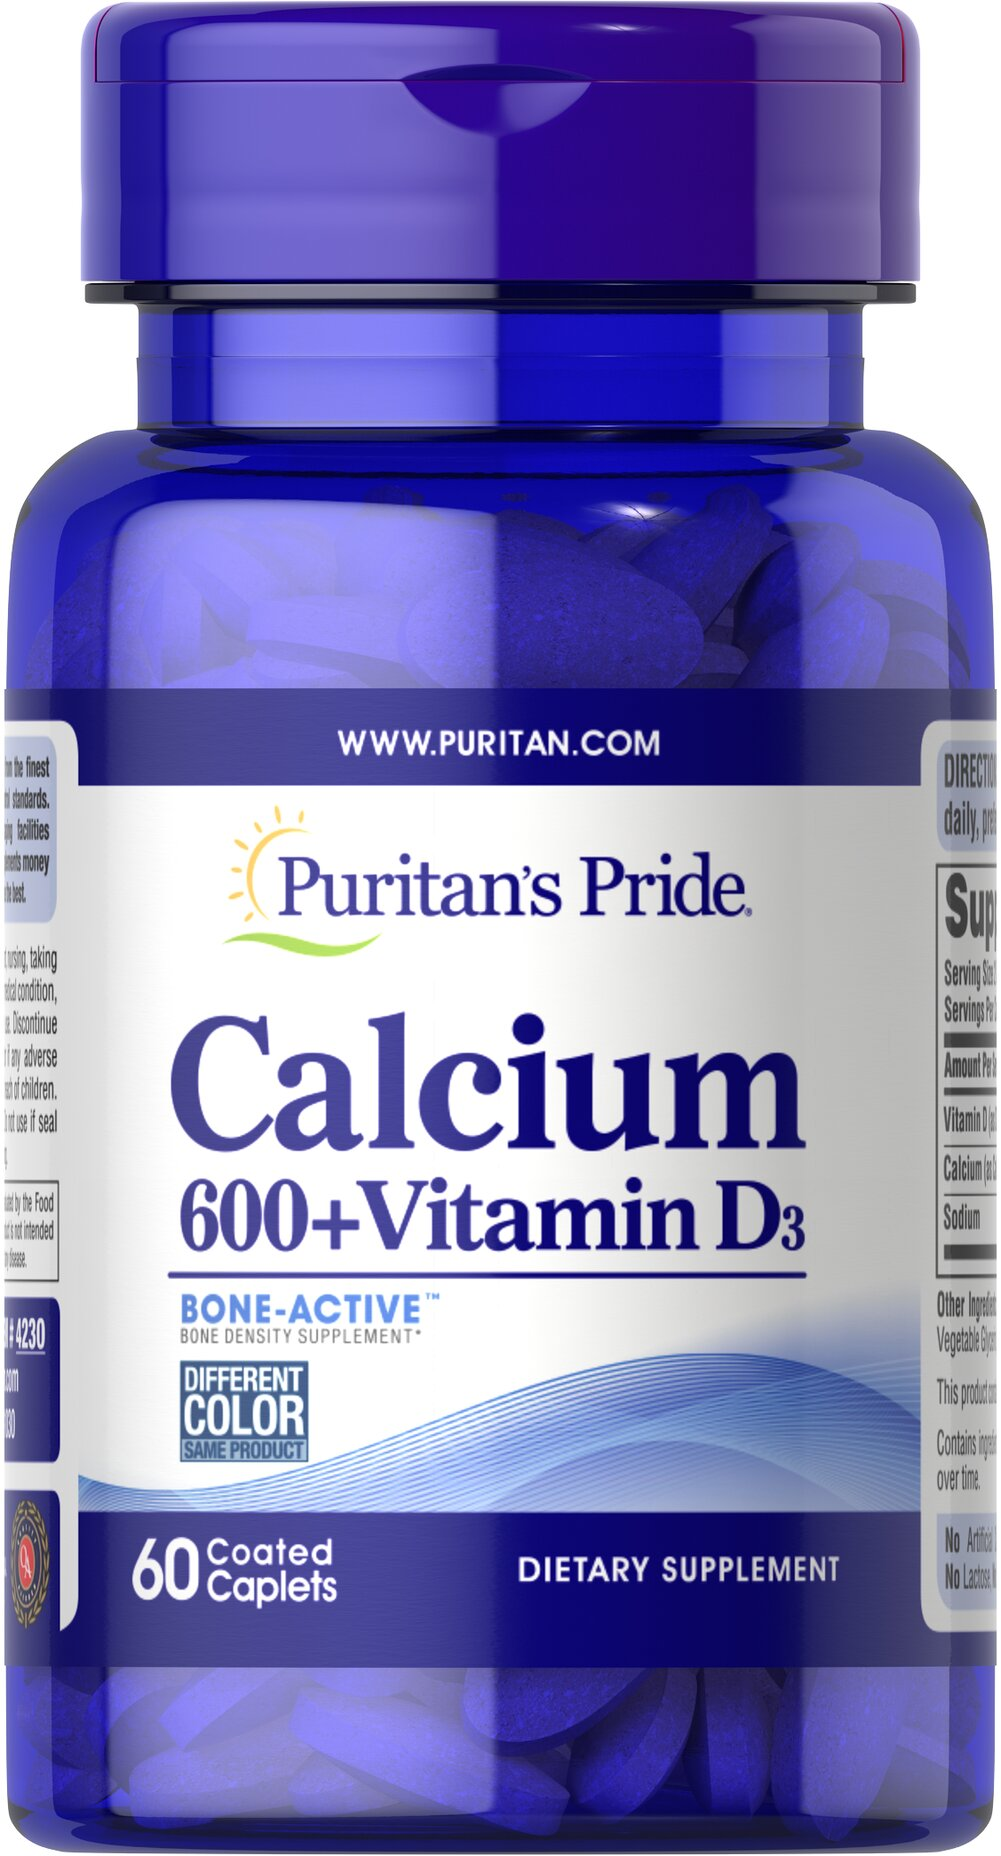 Calcium Carbonate 600 mg + Vitamin D 125 IU Thumbnail Alternate Bottle View